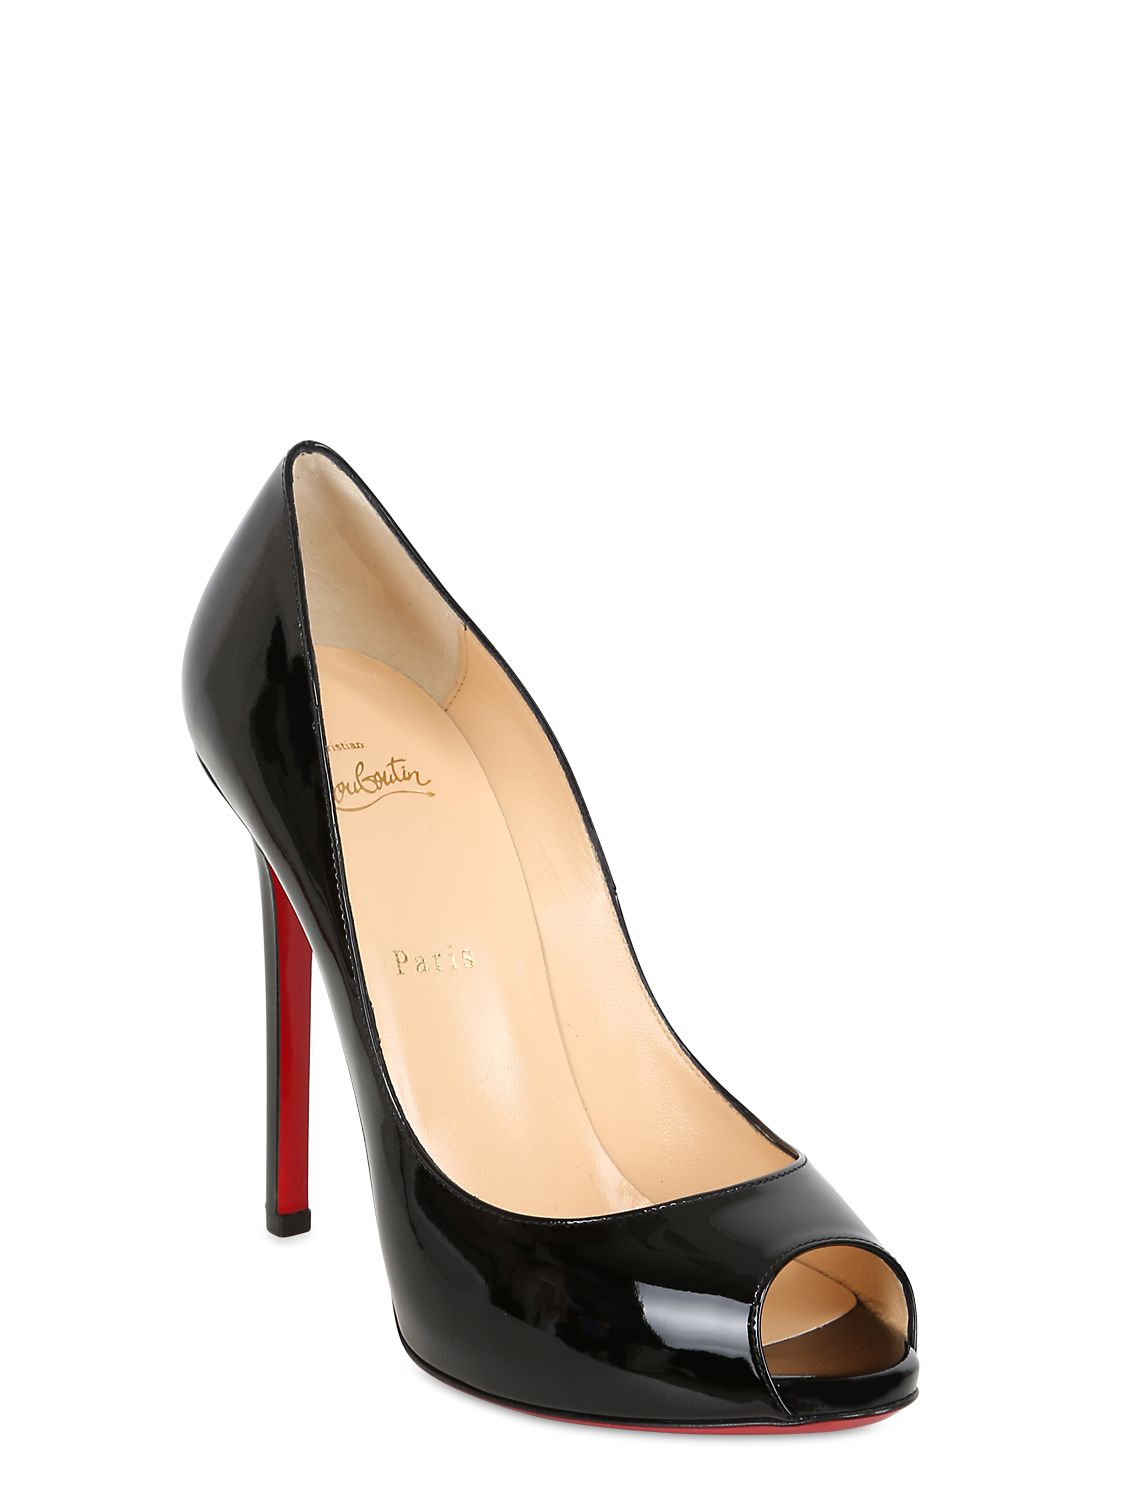 christian louboutin patent leather new simple 120 pumps